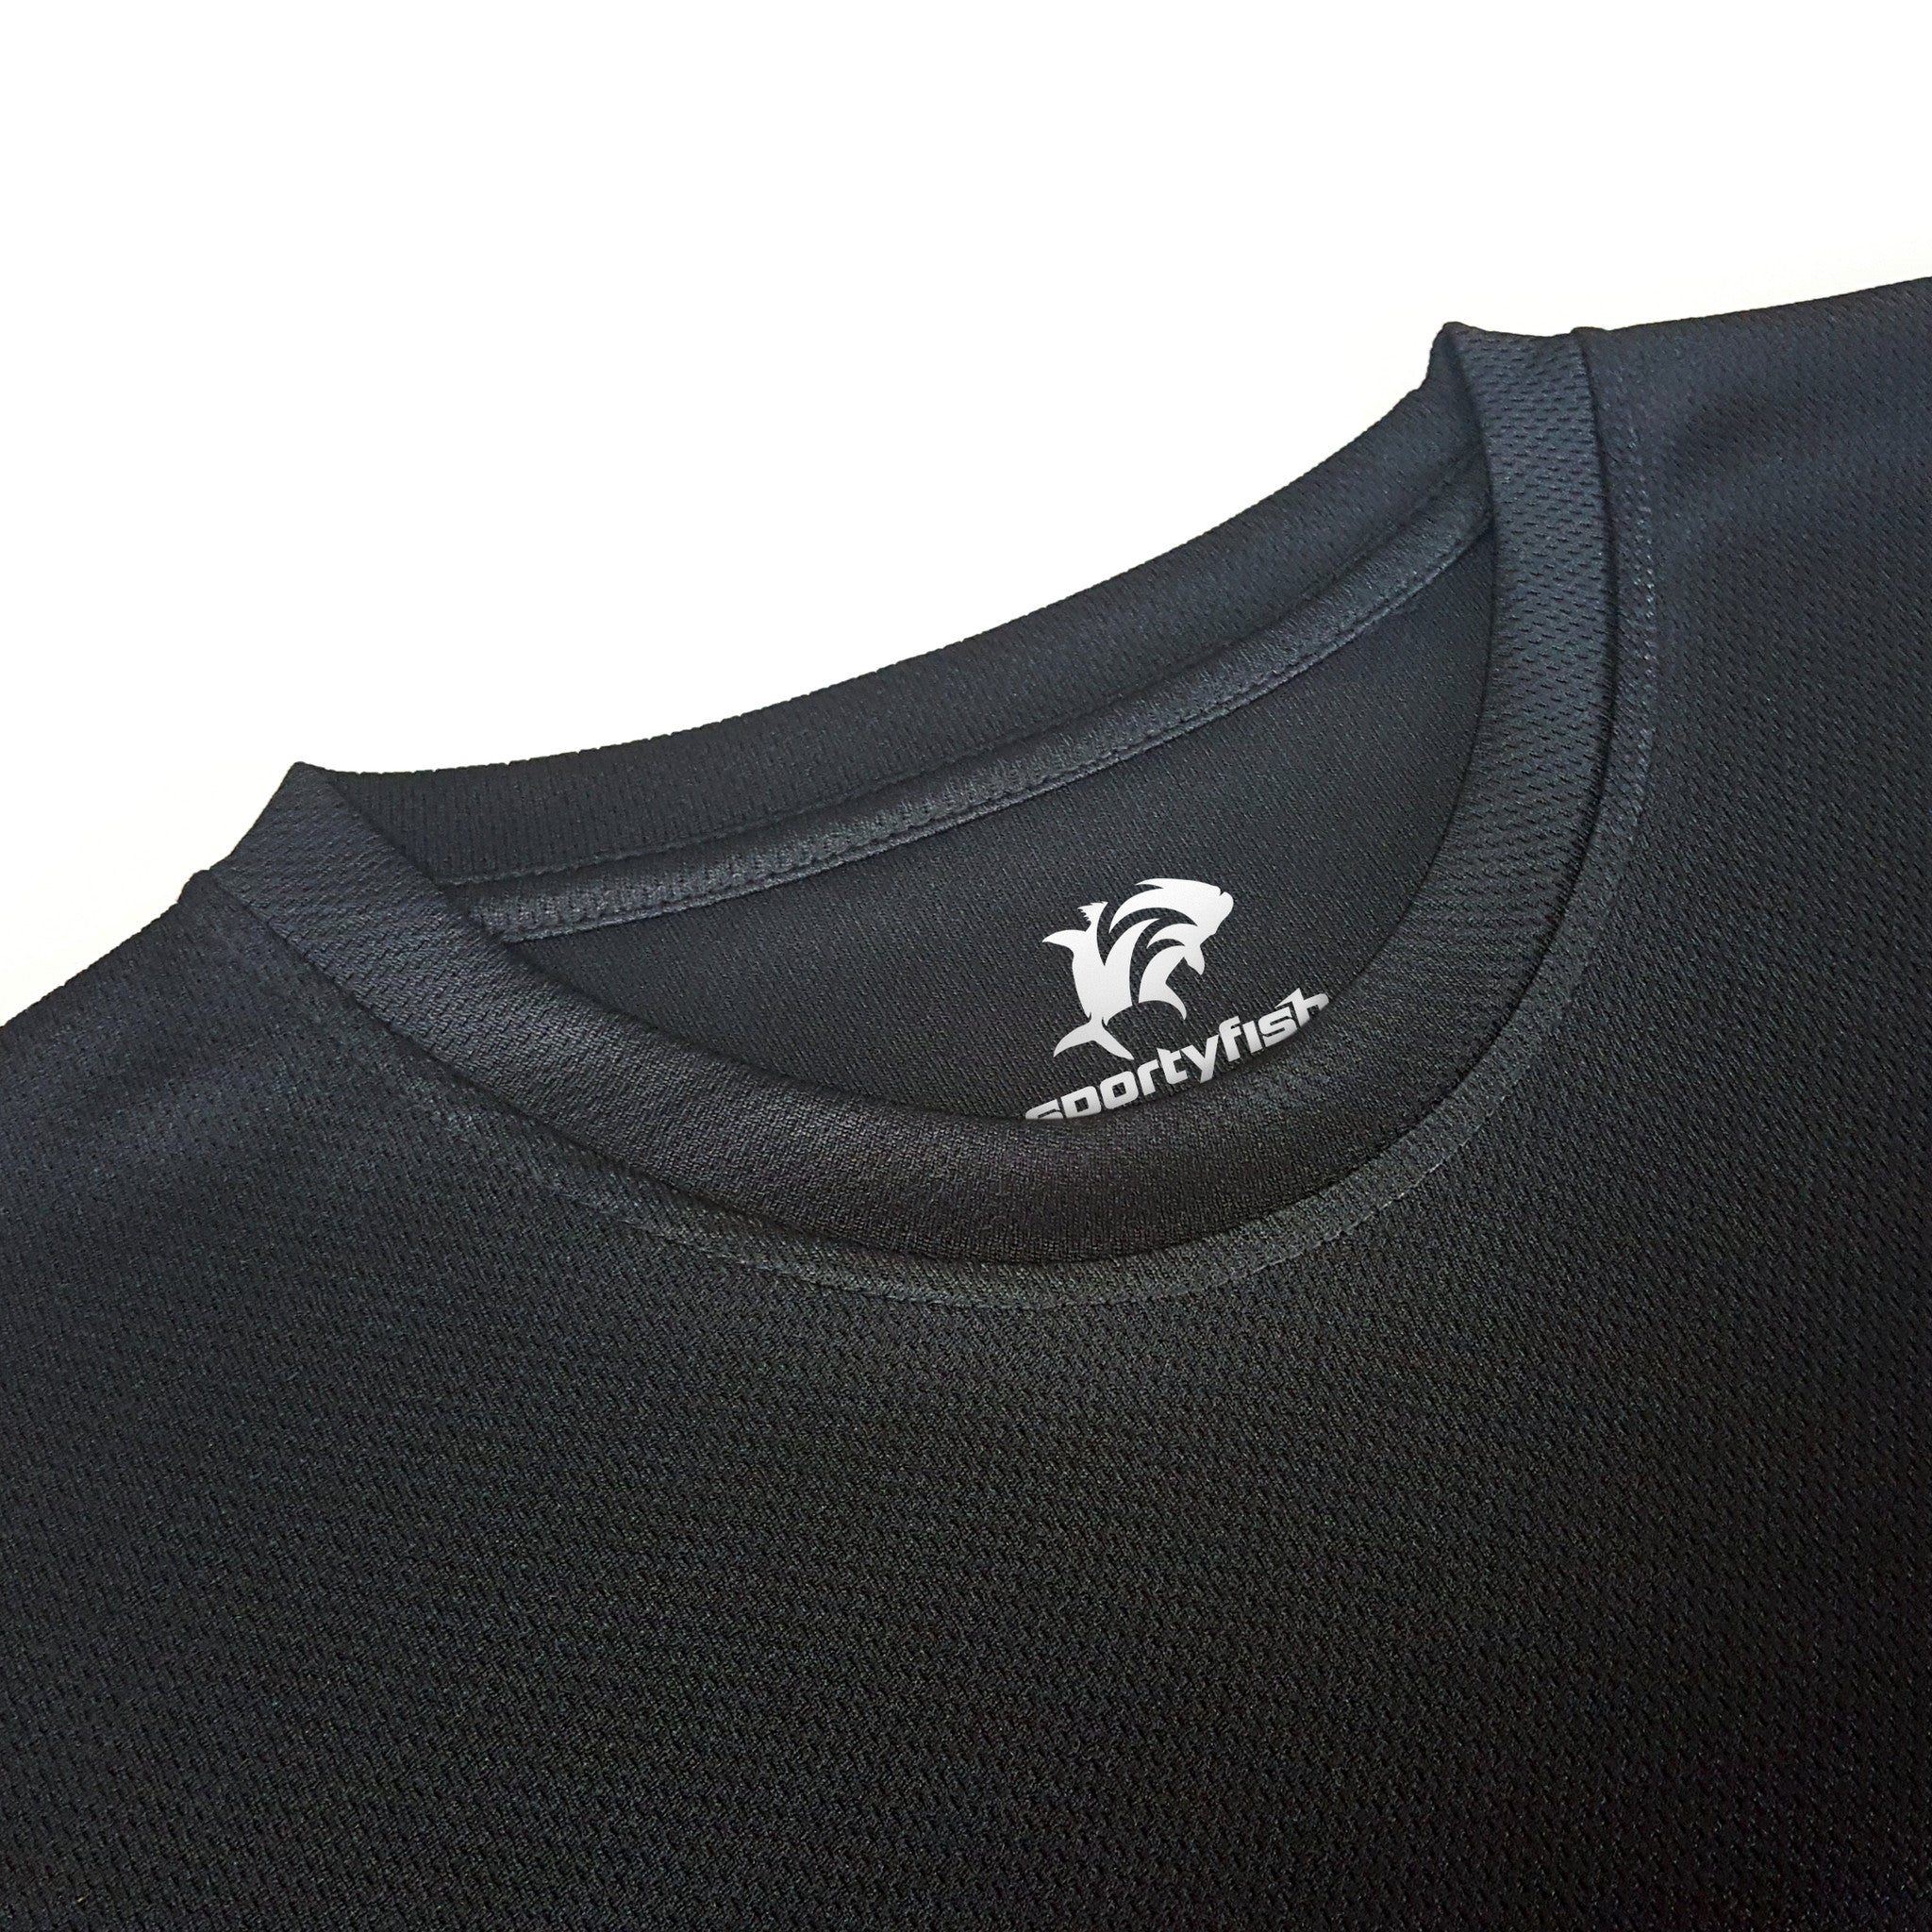 SportyFish Black Series black t-shirt: Giant Trevally close-up view 3